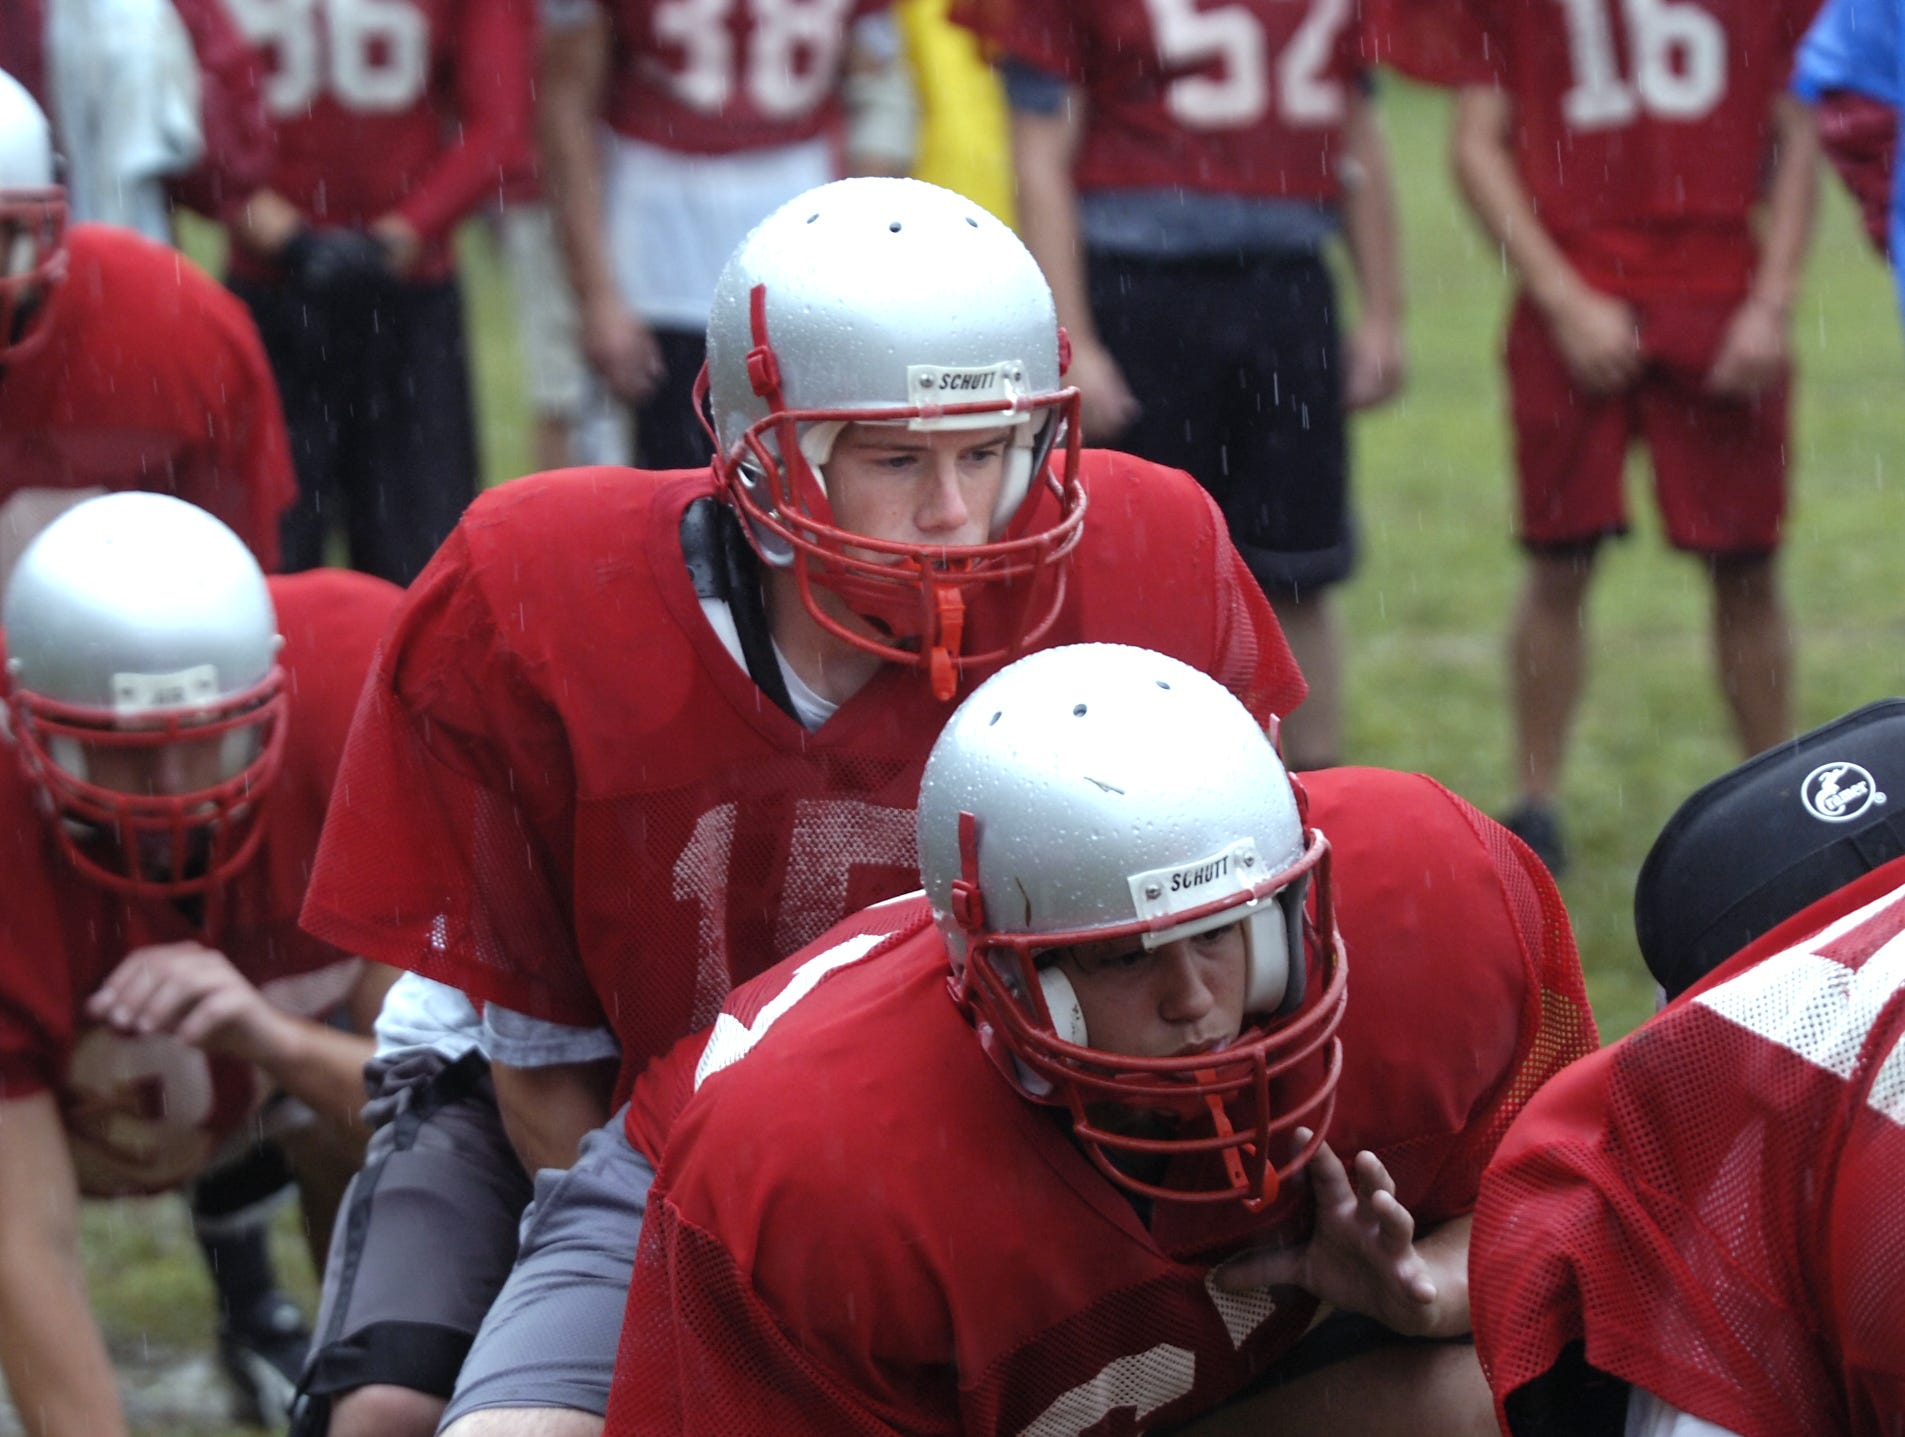 From 2006: Chenango Valley quarterback Matt Mullins starts a play during practice Friday.